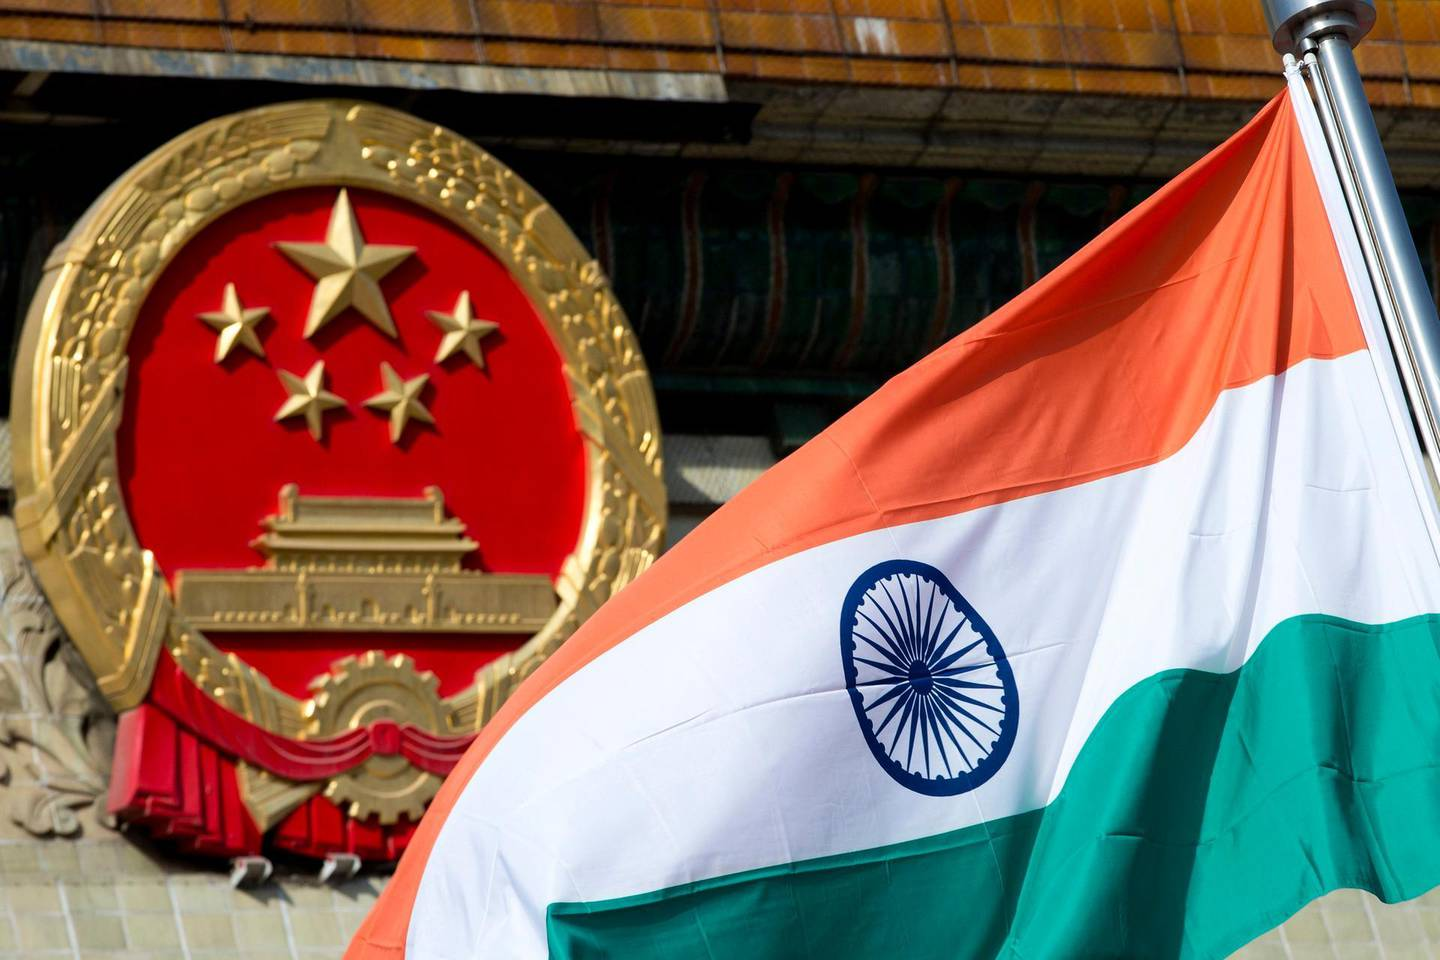 FILE - In this Oct. 23, 2013, file photo, an Indian national flag is flown next to the Chinese national emblem outside the Great Hall of the People in Beijing. China's Commerce Ministry said Thursday, Aug. 13, 2020 it has extended punitive tariffs on Indian optical fiber products for five years. The announcement follows a yearlong review after a previous tariff expired in 2019. It takes effect Aug. 14. (AP Photo/Andy Wong, file)